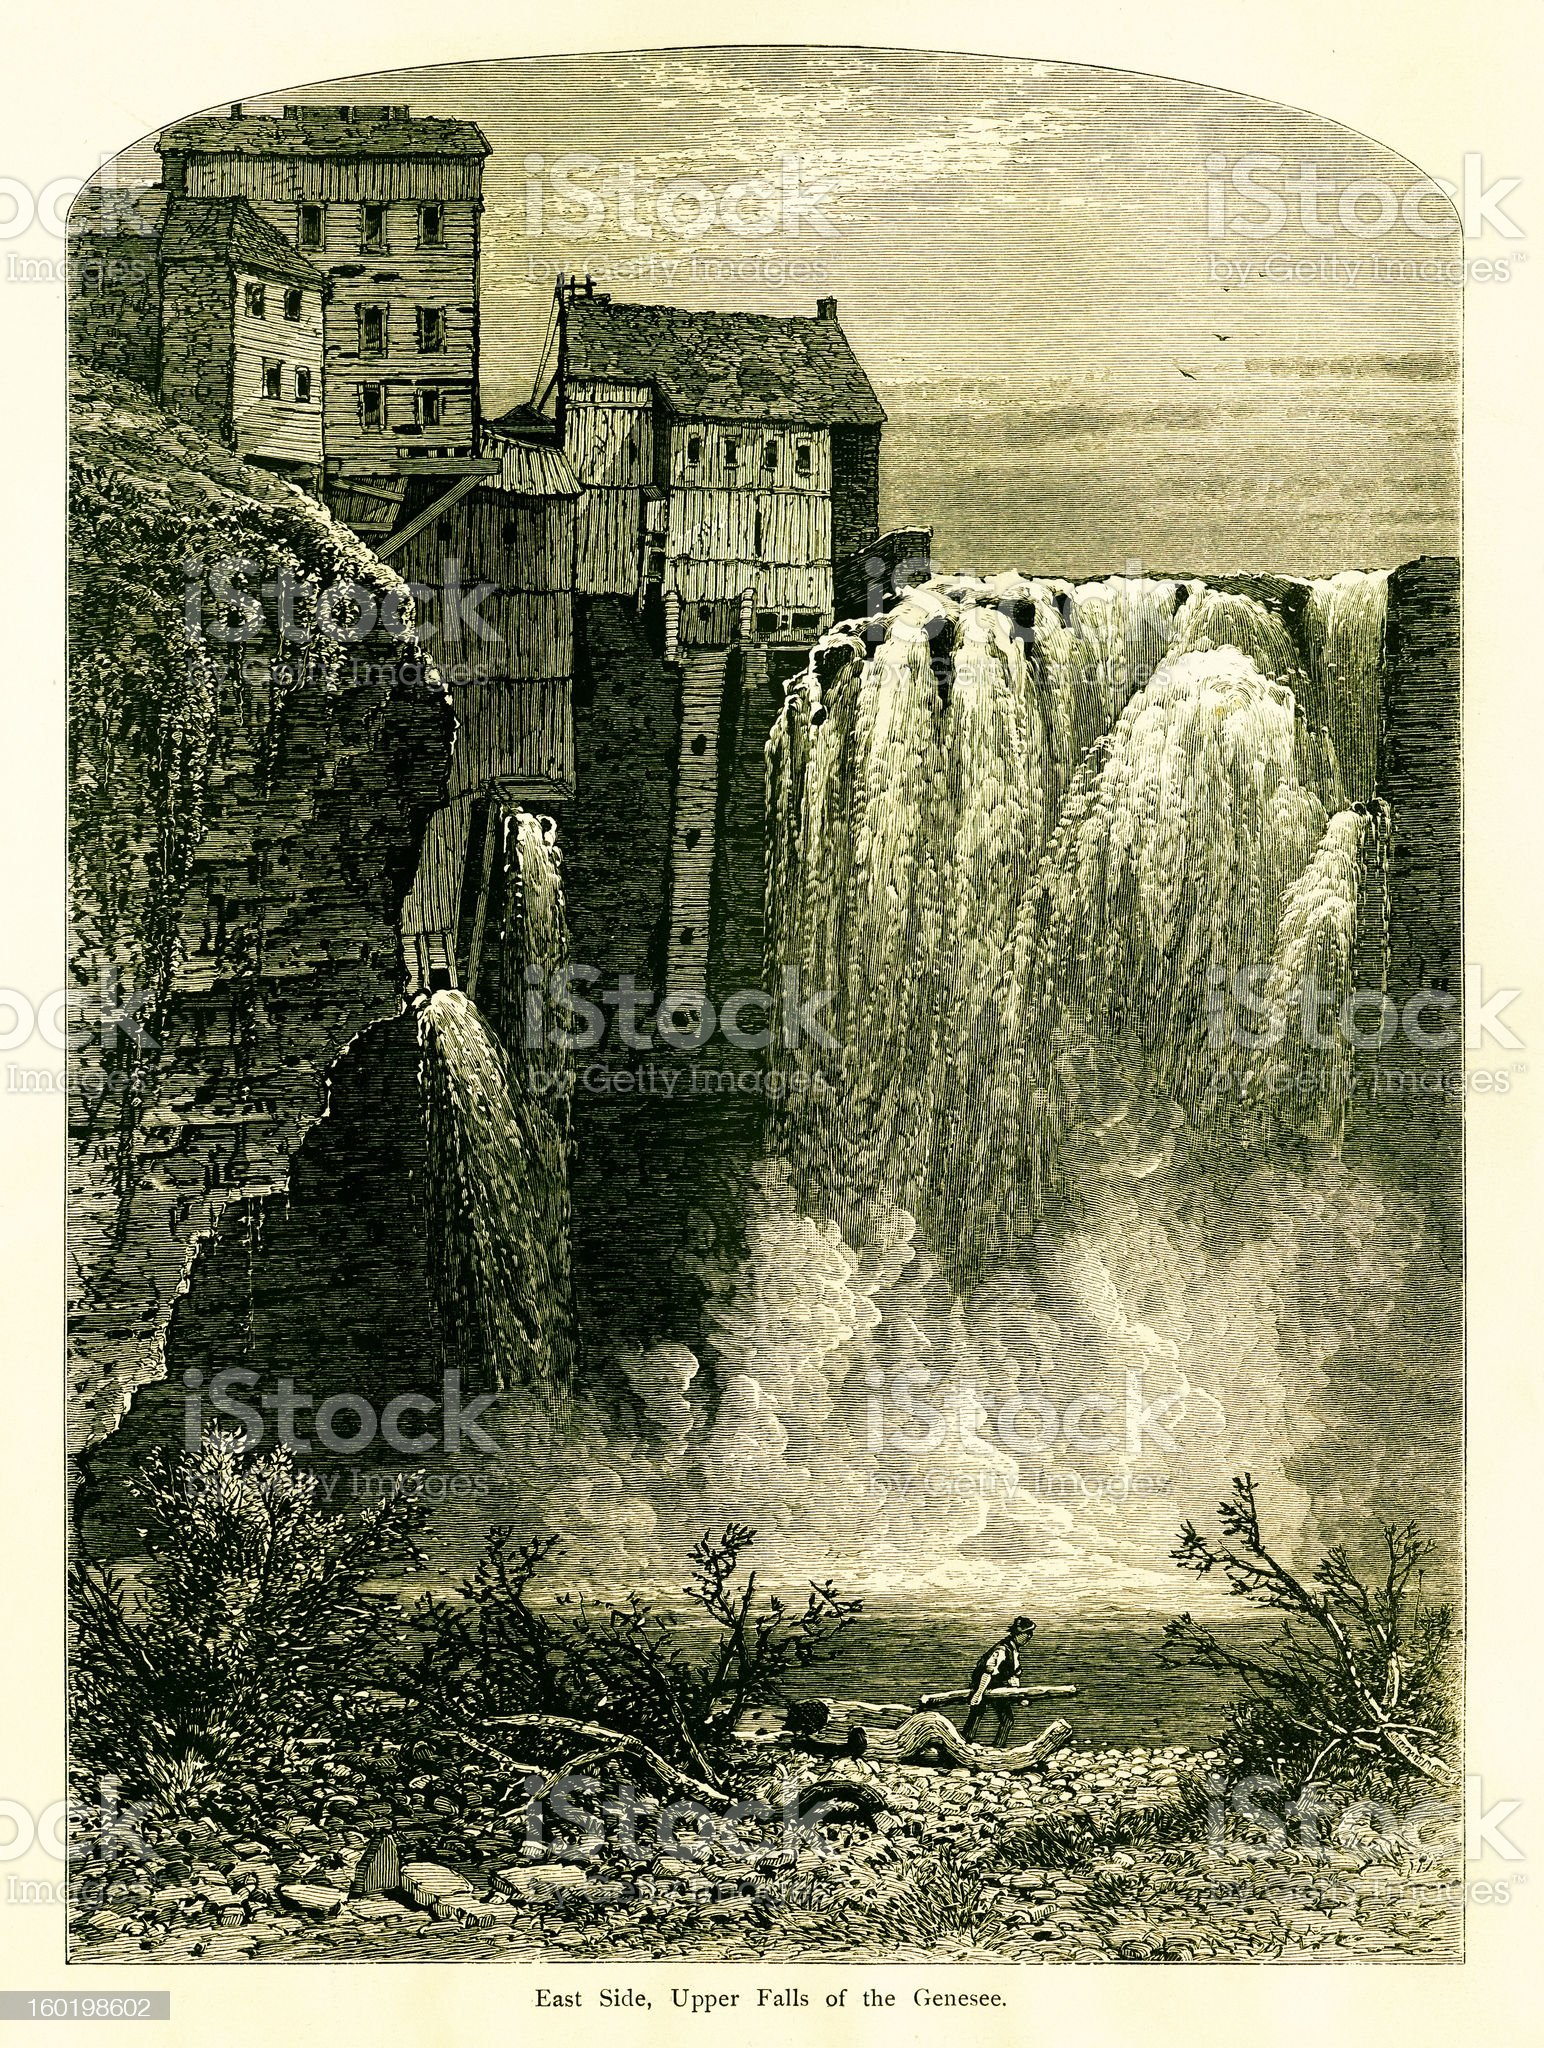 East side of Upper Falls, Portage Canyon, New York royalty-free stock vector art